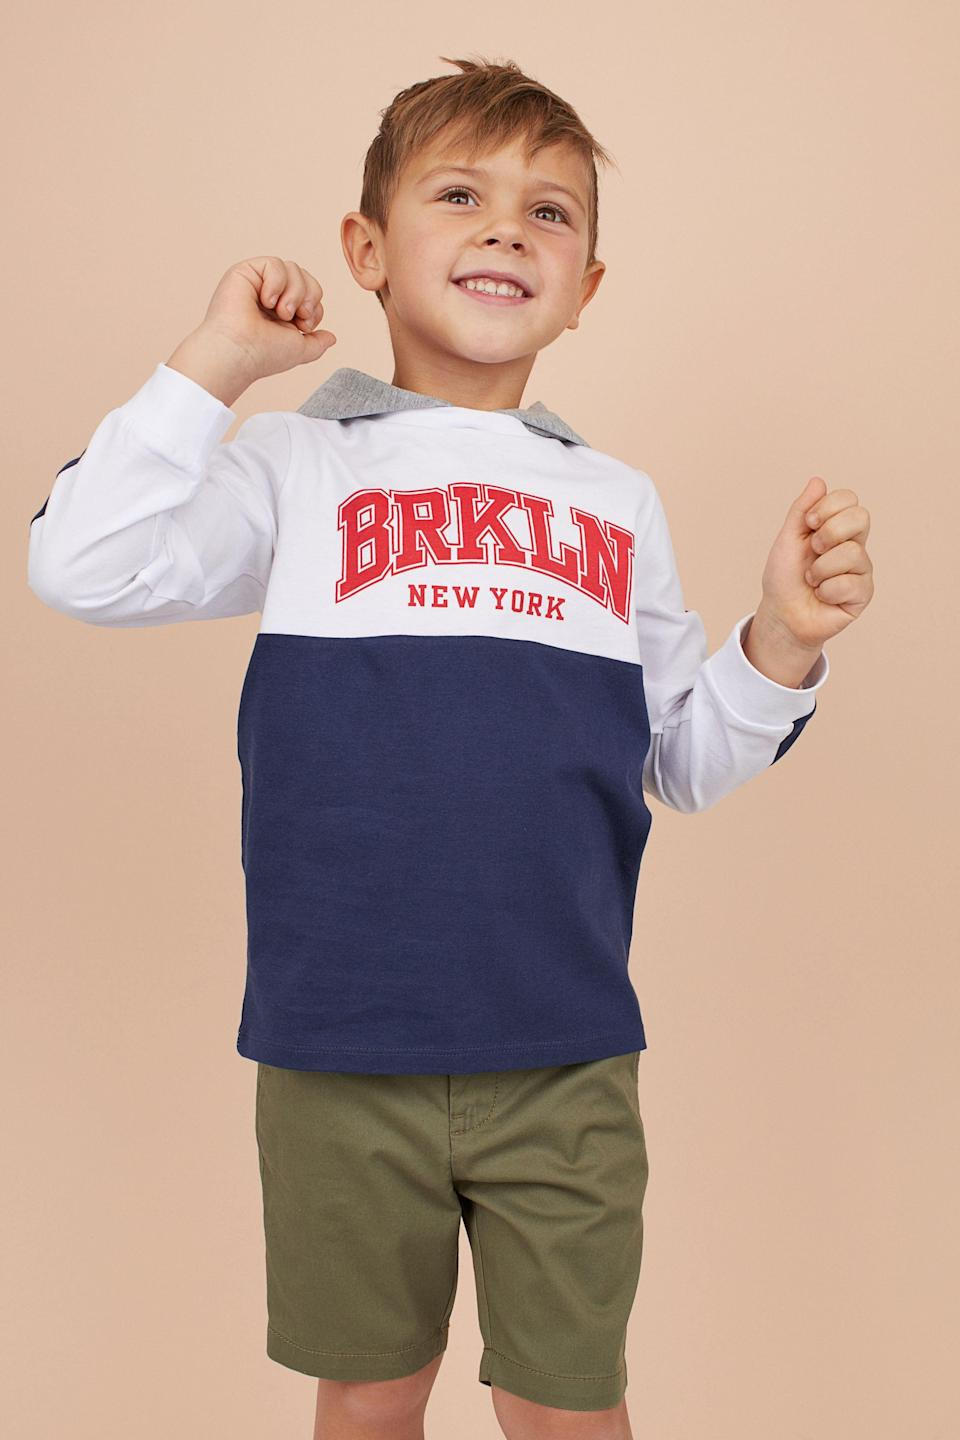 """<p><strong>Pictured: H&M Boys' Jersey Hoodie</strong></p><p>hm.com</p><p><strong>$5.99</strong></p><p><a href=""""https://go.redirectingat.com?id=74968X1596630&url=https%3A%2F%2Fwww2.hm.com%2Fen_us%2Fproductpage.0877079002.html&sref=https%3A%2F%2Fwww.goodhousekeeping.com%2Flife%2Fmoney%2Fg4609%2Fback-to-school-sales%2F"""" rel=""""nofollow noopener"""" target=""""_blank"""" data-ylk=""""slk:Shop Now"""" class=""""link rapid-noclick-resp"""">Shop Now</a></p><ul><li><strong>Save up to 65%</strong> on <a href=""""https://go.redirectingat.com?id=74968X1596630&url=https%3A%2F%2Fwww2.hm.com%2Fen_us%2Fsale%2Fkids%2Fview-all.html&sref=https%3A%2F%2Fwww.goodhousekeeping.com%2Flife%2Fmoney%2Fg4609%2Fback-to-school-sales%2F"""" rel=""""nofollow noopener"""" target=""""_blank"""" data-ylk=""""slk:kids' clothing"""" class=""""link rapid-noclick-resp"""">kids' clothing</a> at H&M. </li><li>Take up to <strong>60% off</strong> <a href=""""https://go.redirectingat.com?id=74968X1596630&url=https%3A%2F%2Fwww.walmart.com%2Fbrowse%2Fclothing%2Fkids-clothing%2F5438_7712430&sref=https%3A%2F%2Fwww.goodhousekeeping.com%2Flife%2Fmoney%2Fg4609%2Fback-to-school-sales%2F"""" rel=""""nofollow noopener"""" target=""""_blank"""" data-ylk=""""slk:kid's clothing"""" class=""""link rapid-noclick-resp"""">kid's clothing</a> and <a href=""""https://go.redirectingat.com?id=74968X1596630&url=https%3A%2F%2Fwww.walmart.com%2Fbrowse%2Fshoes%2Fgirls-shoes%2F5438_1045804_9450043&sref=https%3A%2F%2Fwww.goodhousekeeping.com%2Flife%2Fmoney%2Fg4609%2Fback-to-school-sales%2F"""" rel=""""nofollow noopener"""" target=""""_blank"""" data-ylk=""""slk:shoes"""" class=""""link rapid-noclick-resp"""">shoes</a> at Walmart.</li><li><strong>Save up to 60%</strong> during <a href=""""https://go.redirectingat.com?id=74968X1596630&url=https%3A%2F%2Fwww.nordstrom.com%2Fbrowse%2Fsale&sref=https%3A%2F%2Fwww.goodhousekeeping.com%2Flife%2Fmoney%2Fg4609%2Fback-to-school-sales%2F"""" rel=""""nofollow noopener"""" target=""""_blank"""" data-ylk=""""slk:Nordstrom's Anniversary sale"""" class=""""link rapid-noclick-resp"""">Nordstrom's Anniversary sale</a> now.<br></li><li><strong>Sa"""